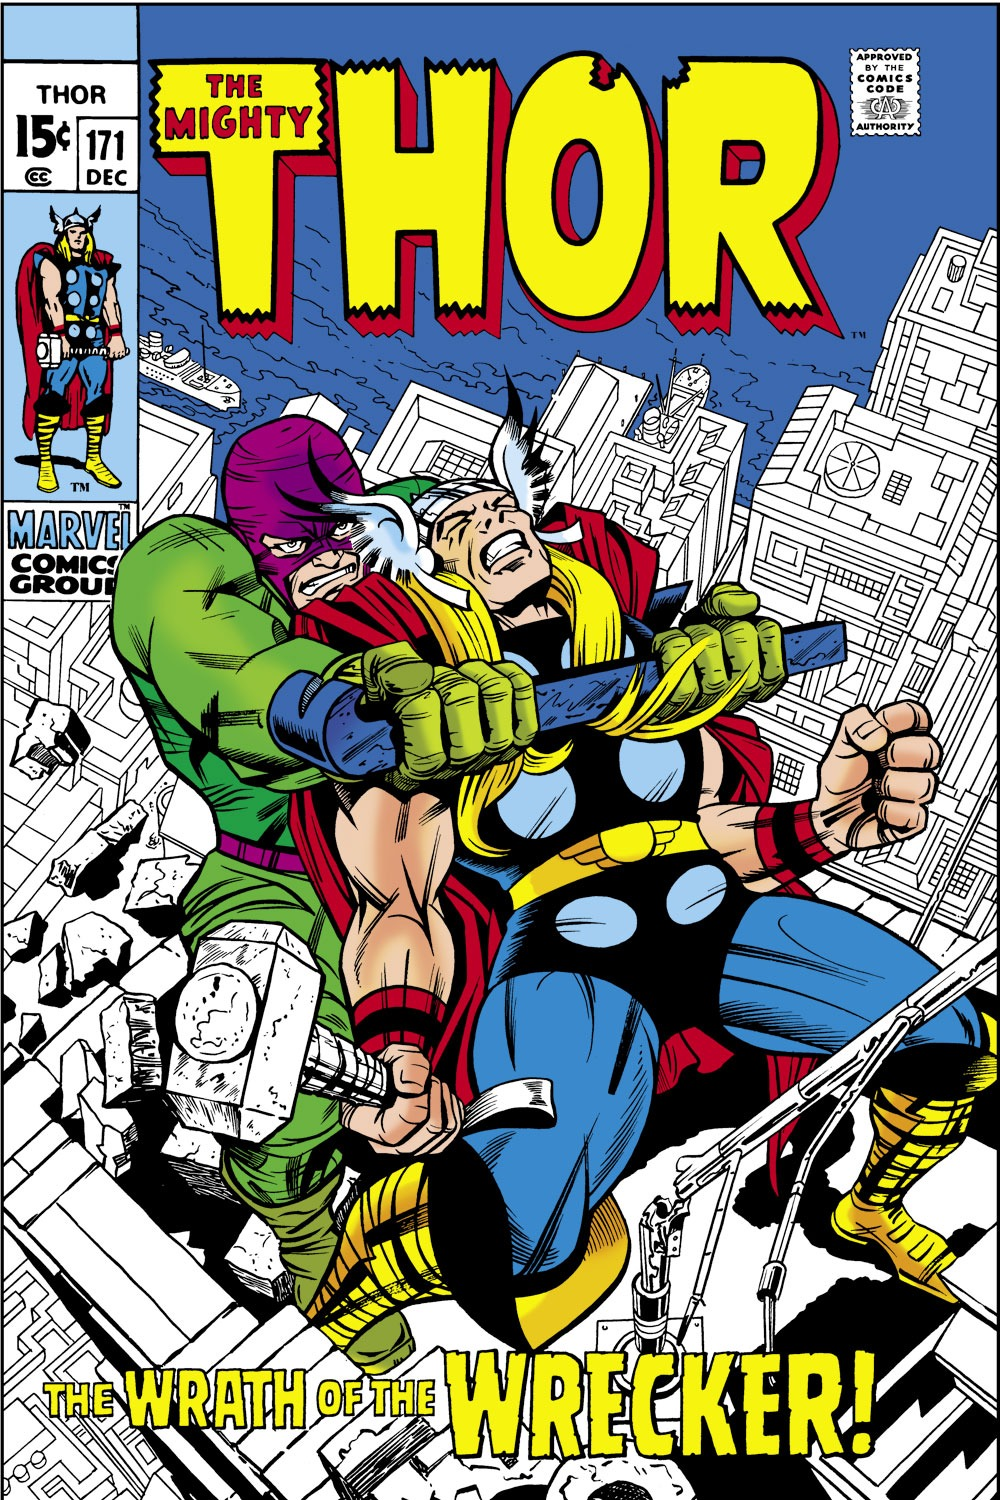 Thor (1966) 171 Page 1